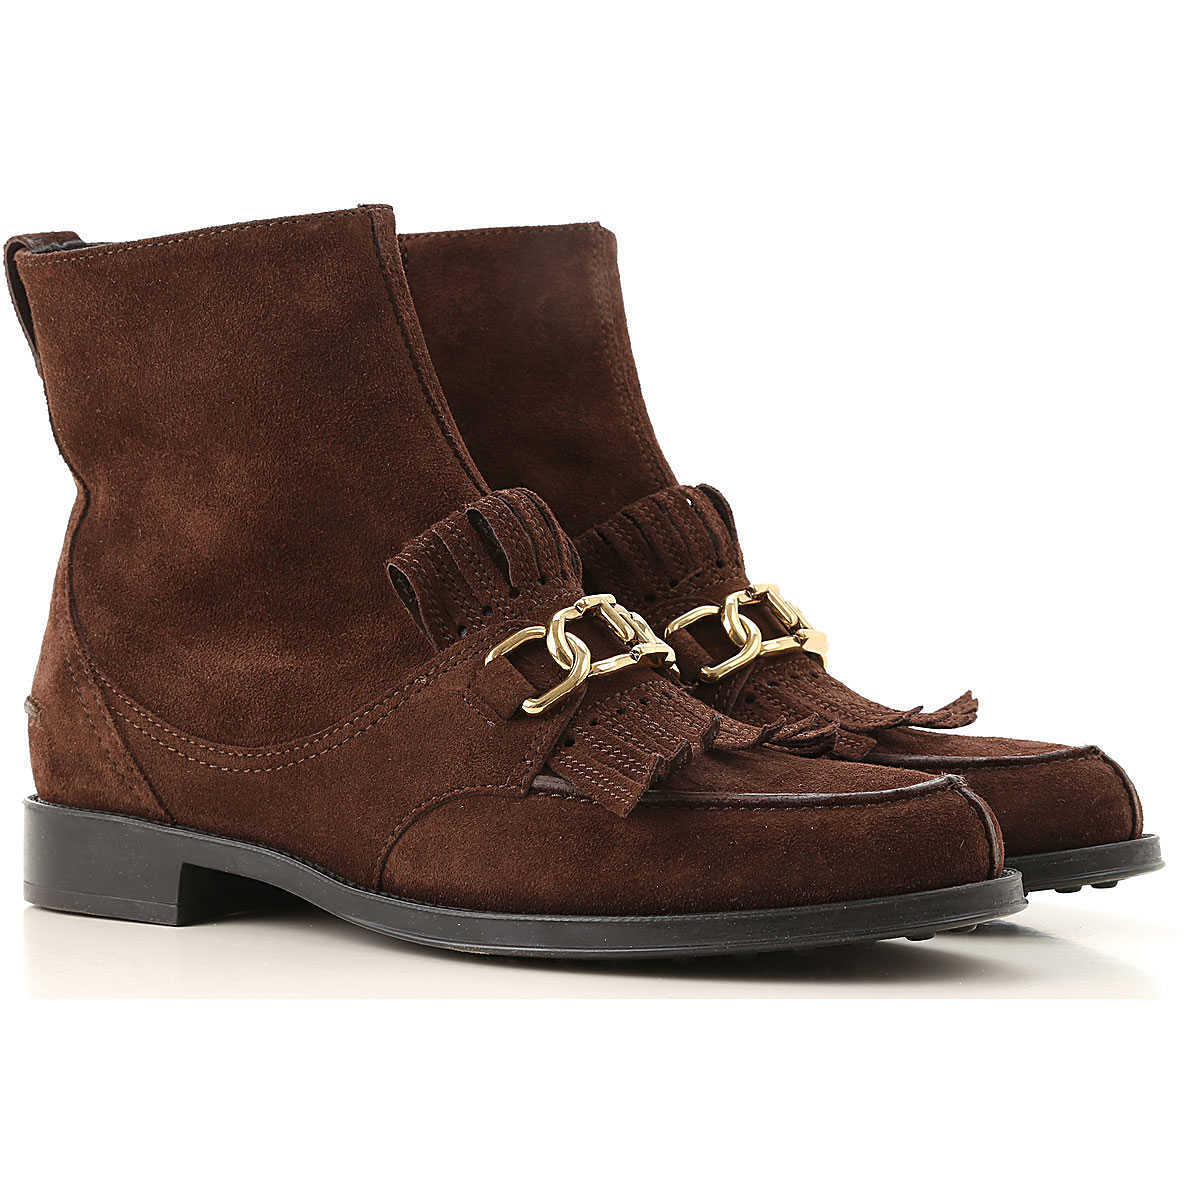 Tods Chelsea Boots for Women On Sale Dark Brown - GOOFASH